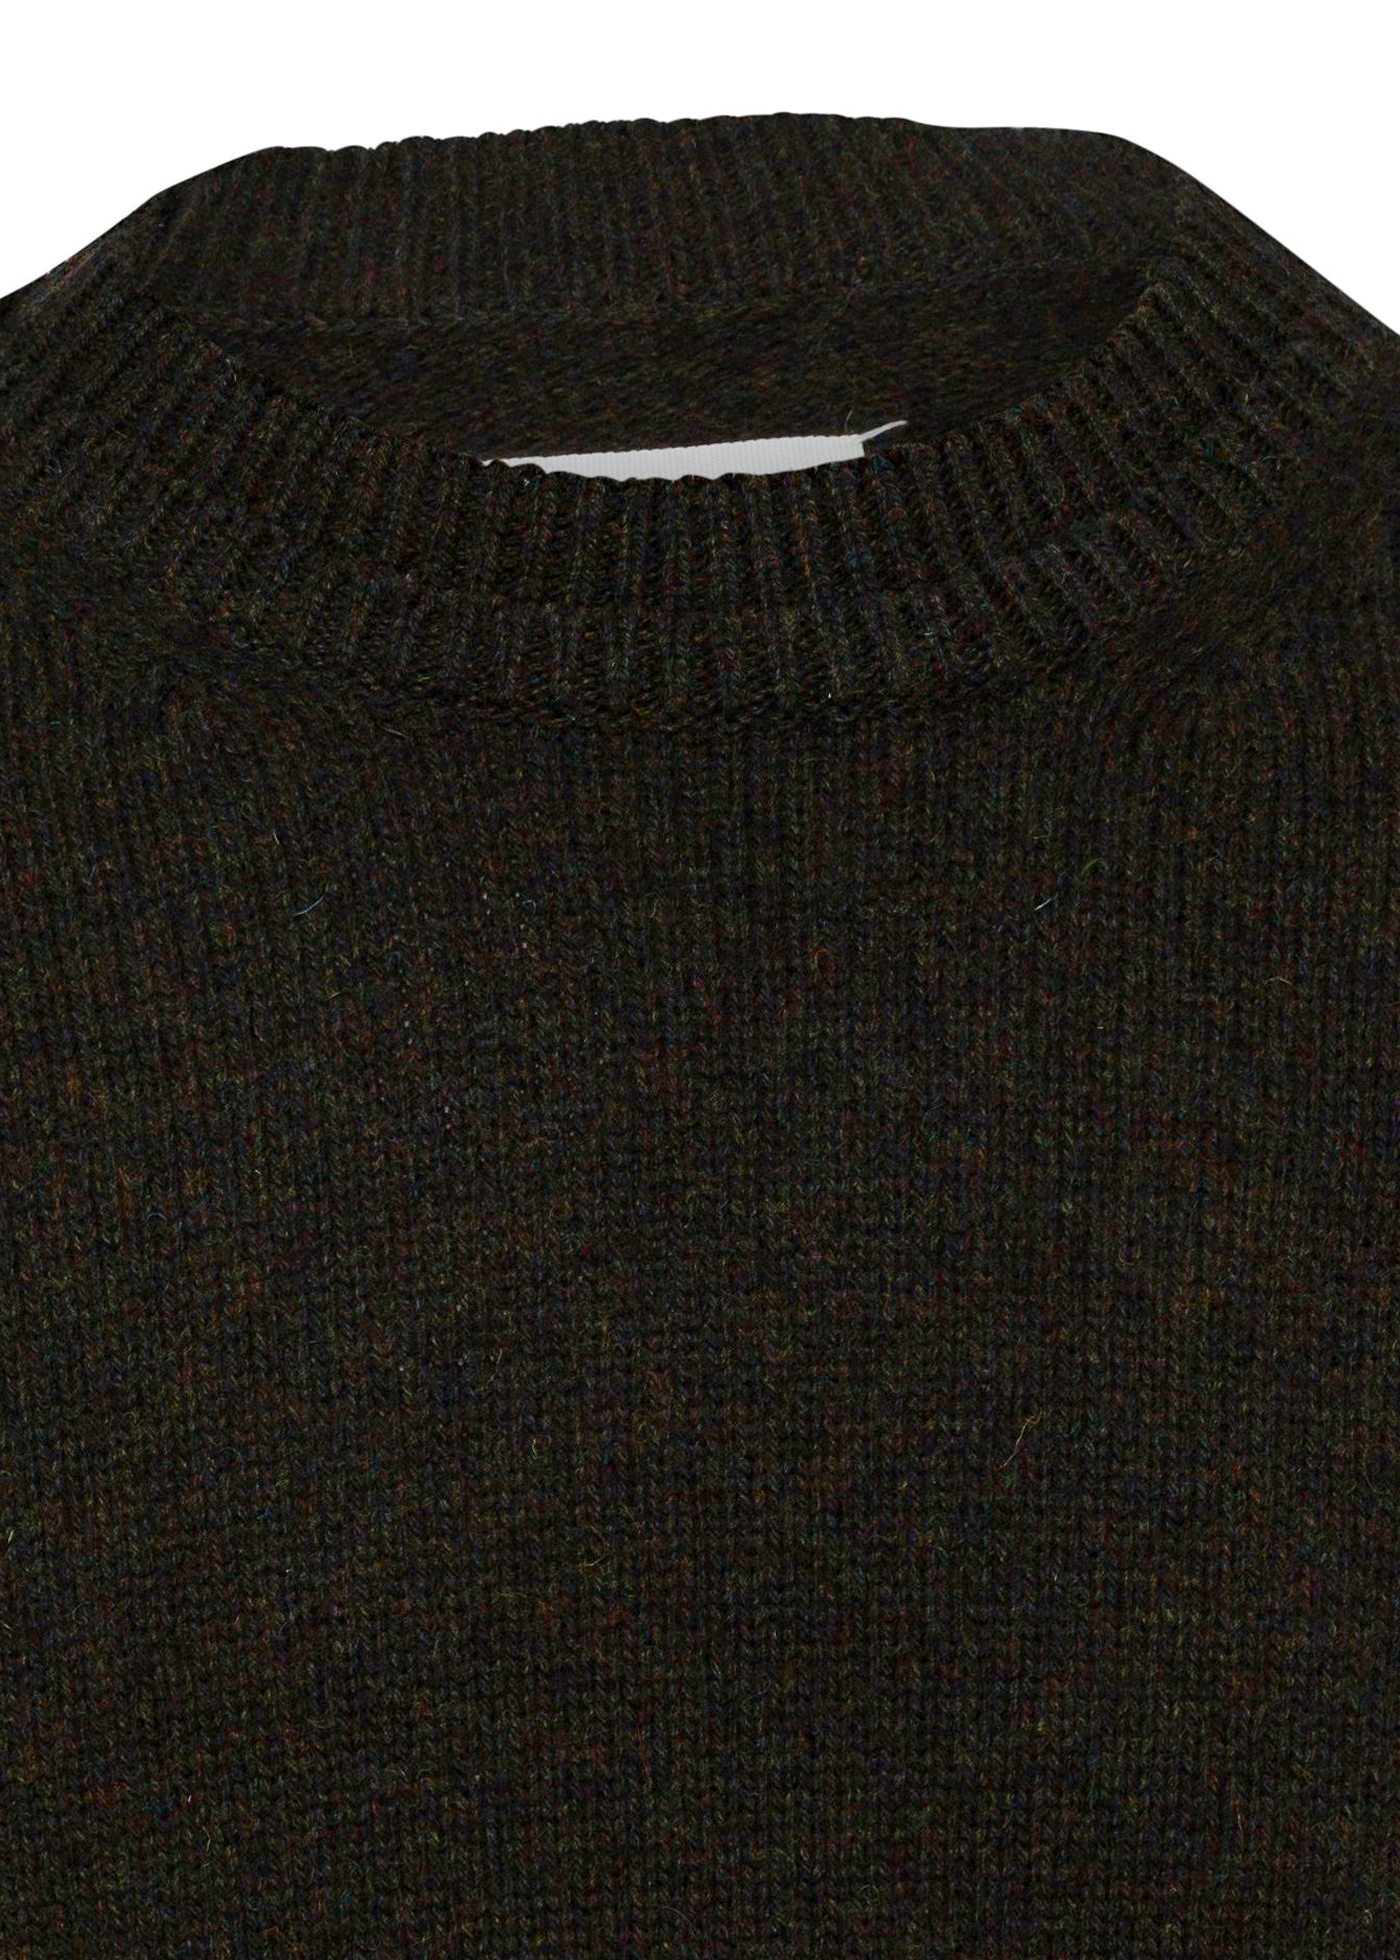 SWEATER image number 2